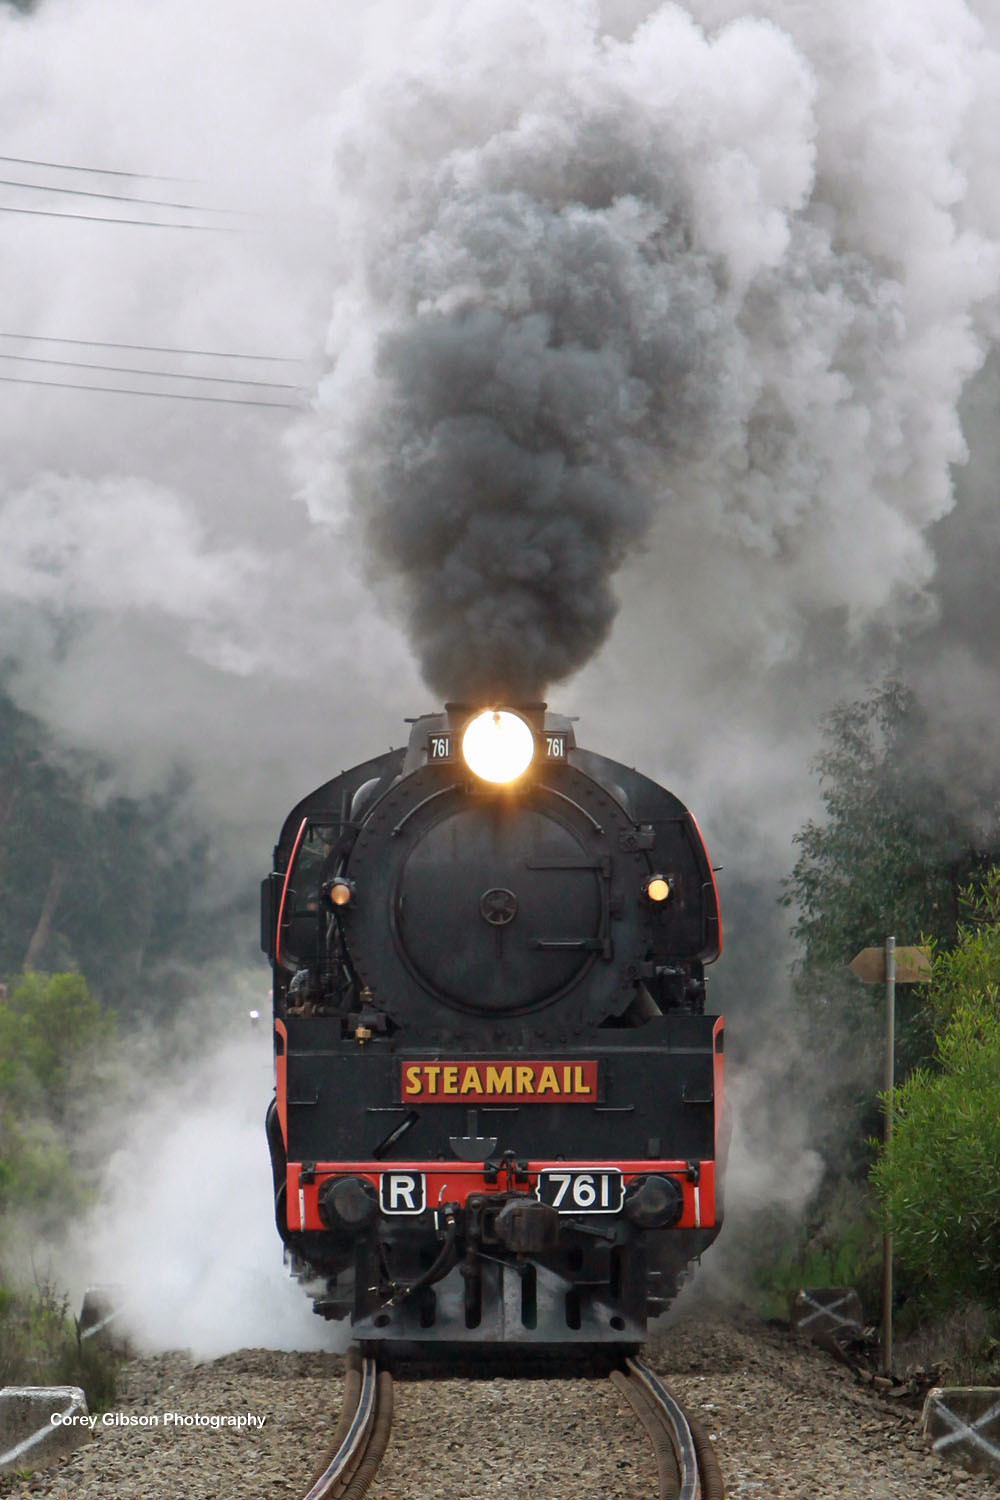 Steamrail R761 by Corey Gibson